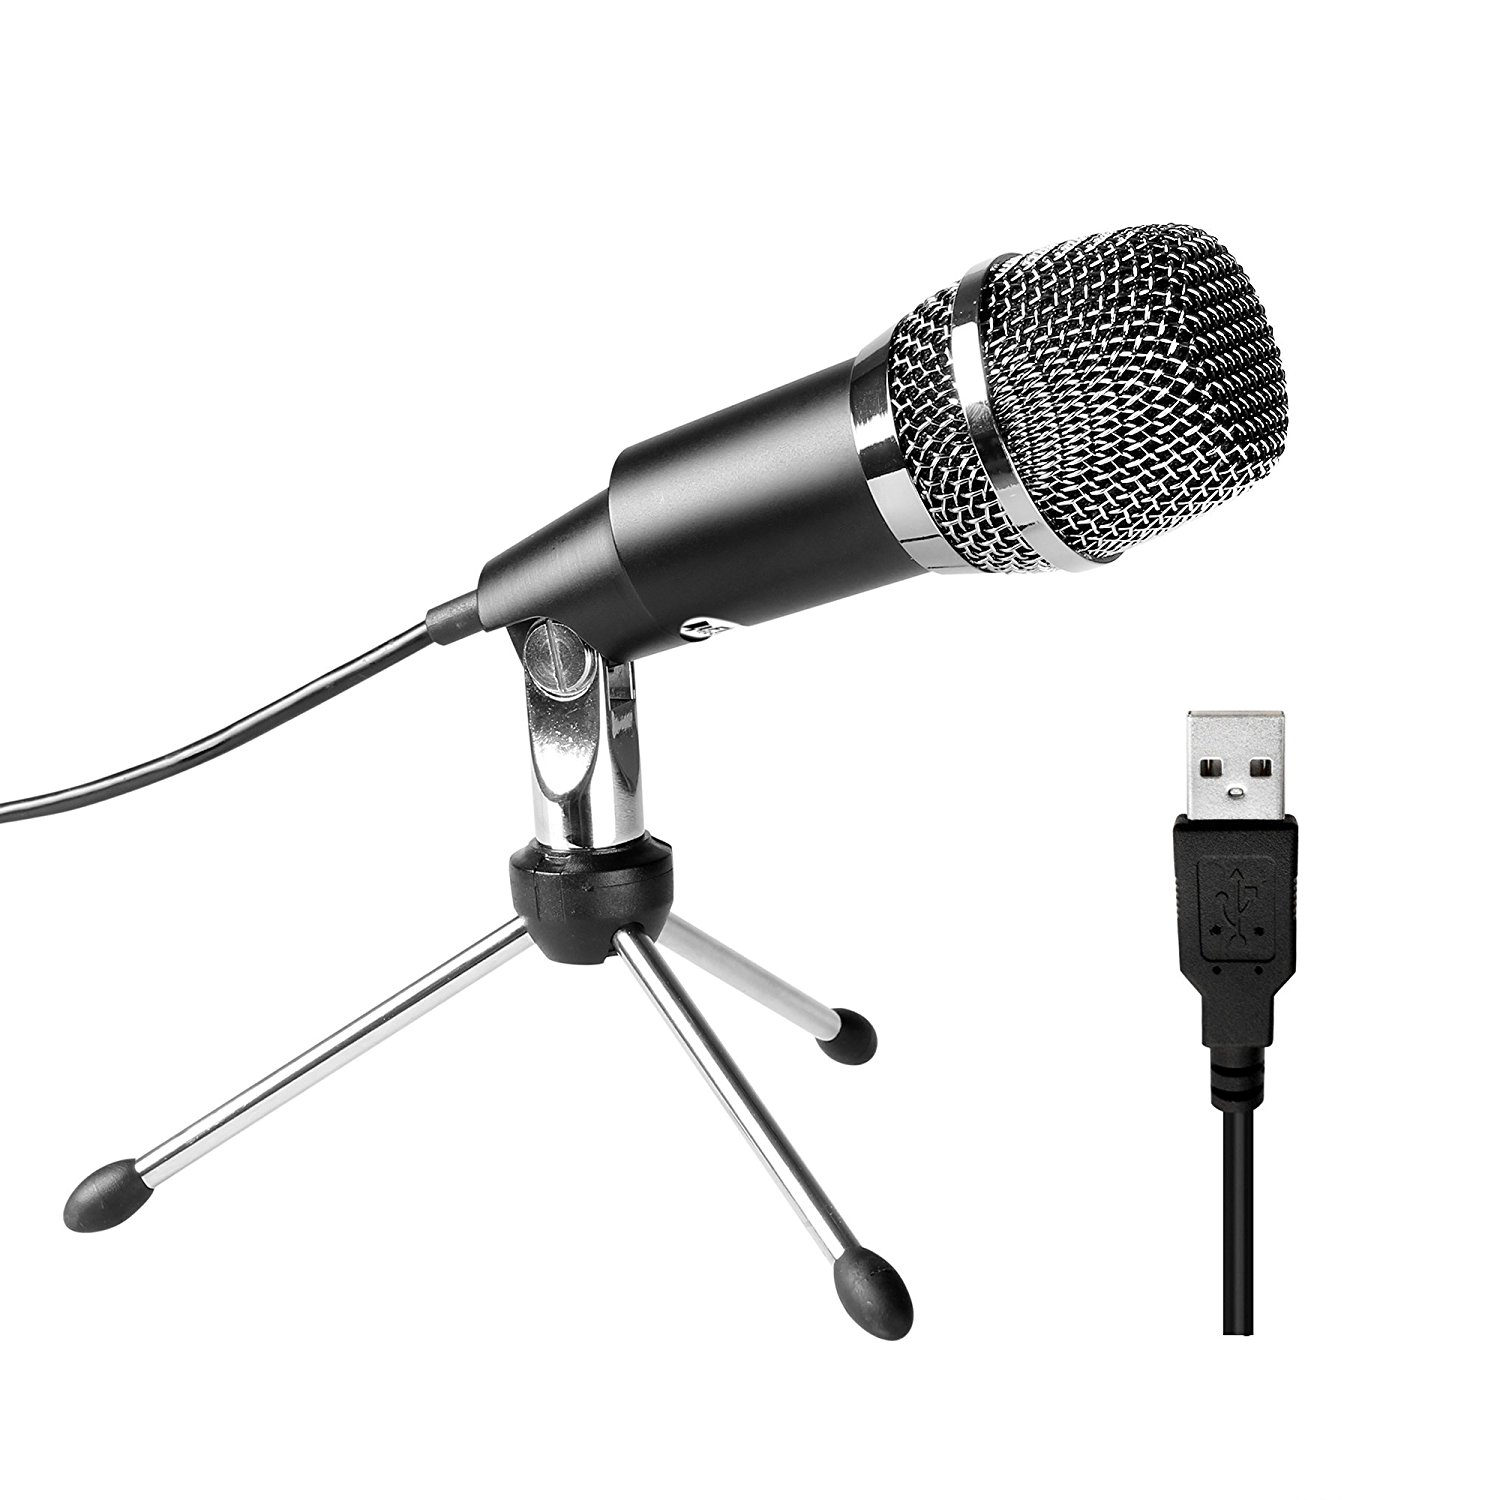 Top 10 Best USB Microphones in 2021